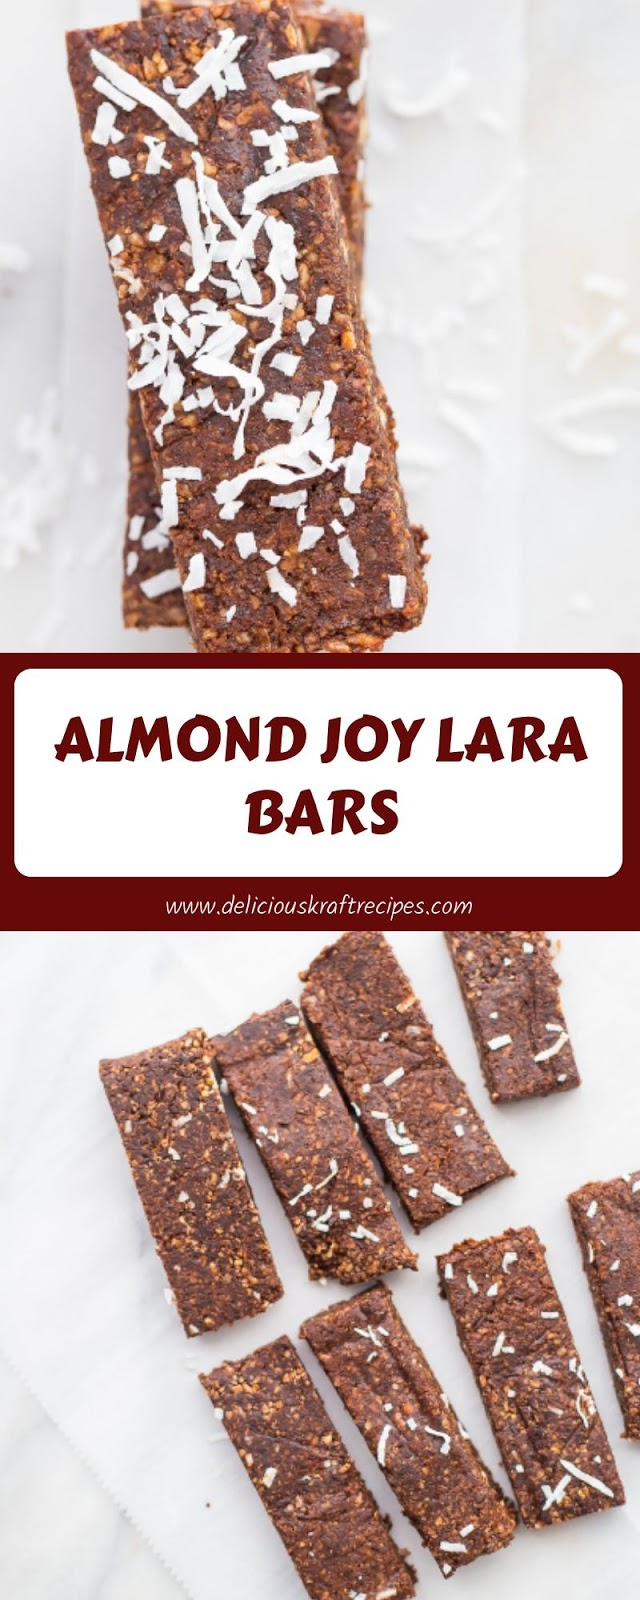 ALMOND JOY LARA BARS